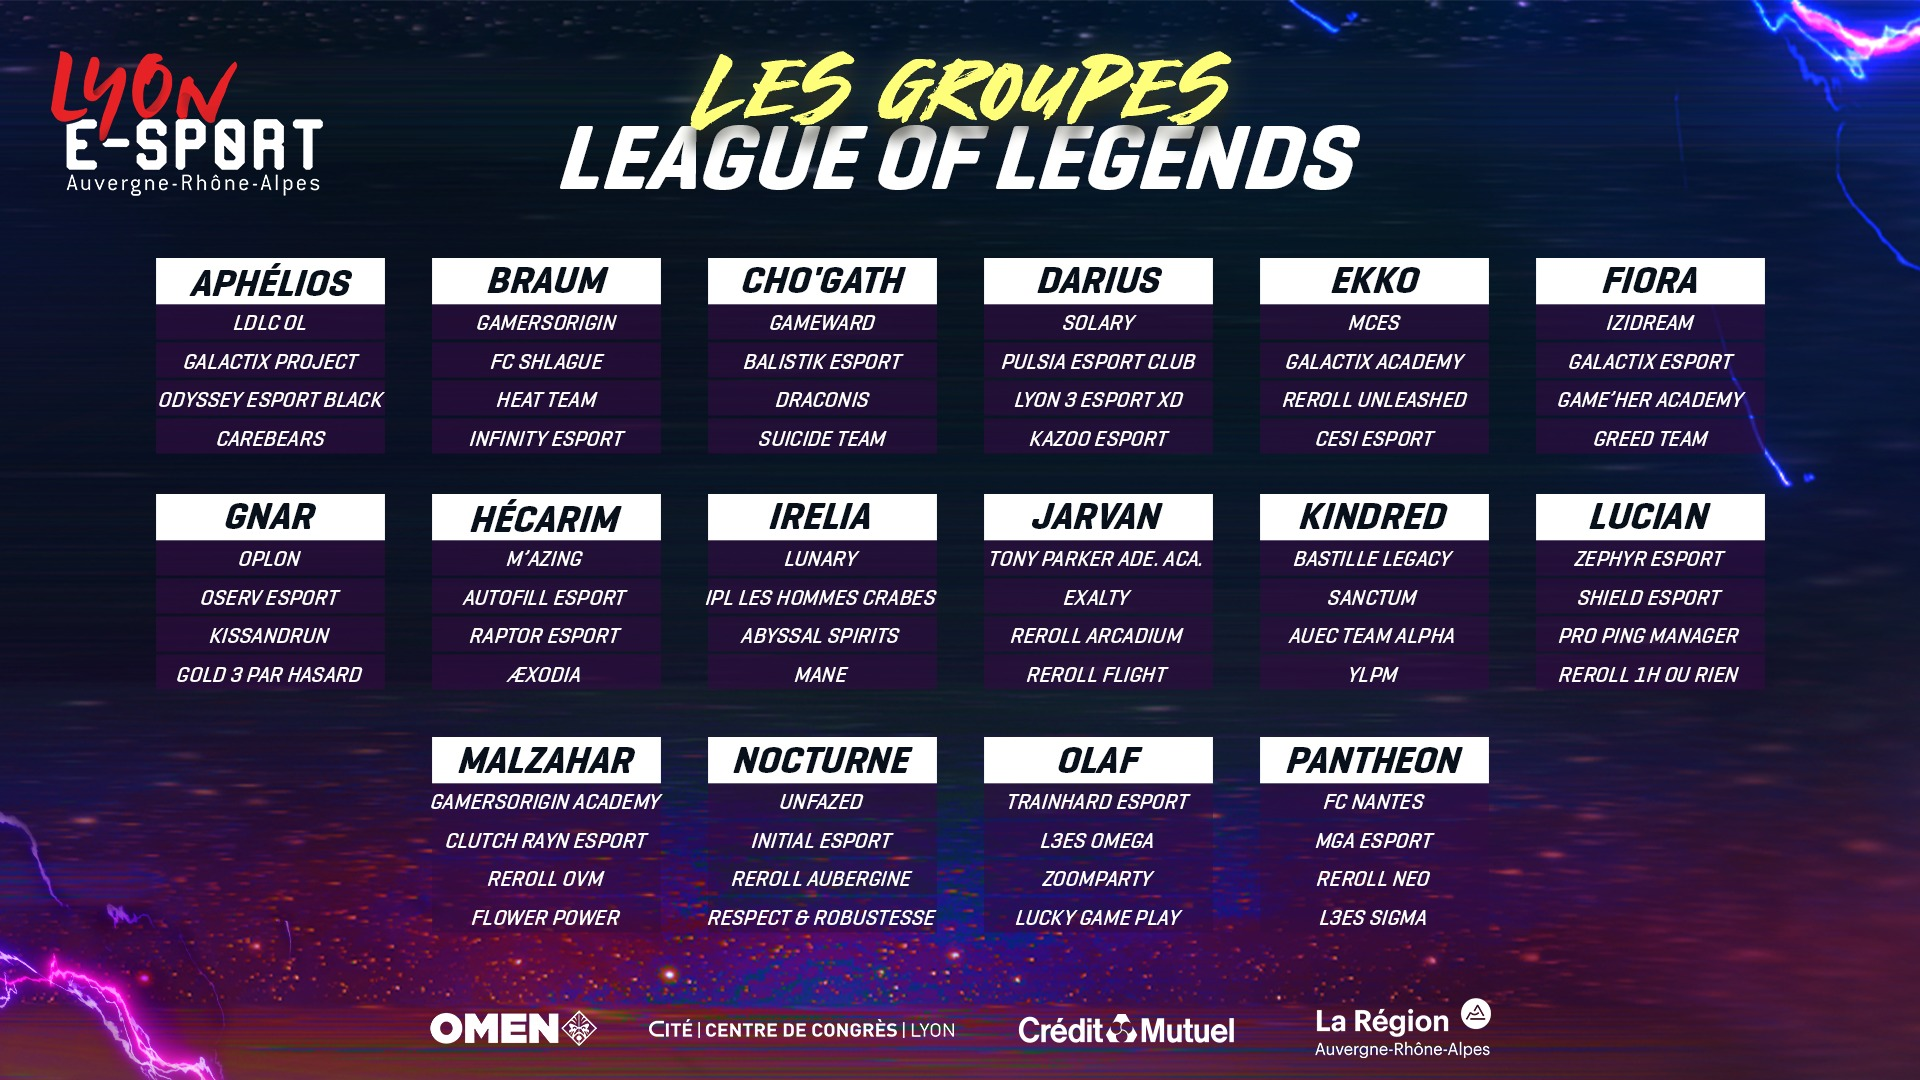 groupes league of legends lyon e-sport 2020